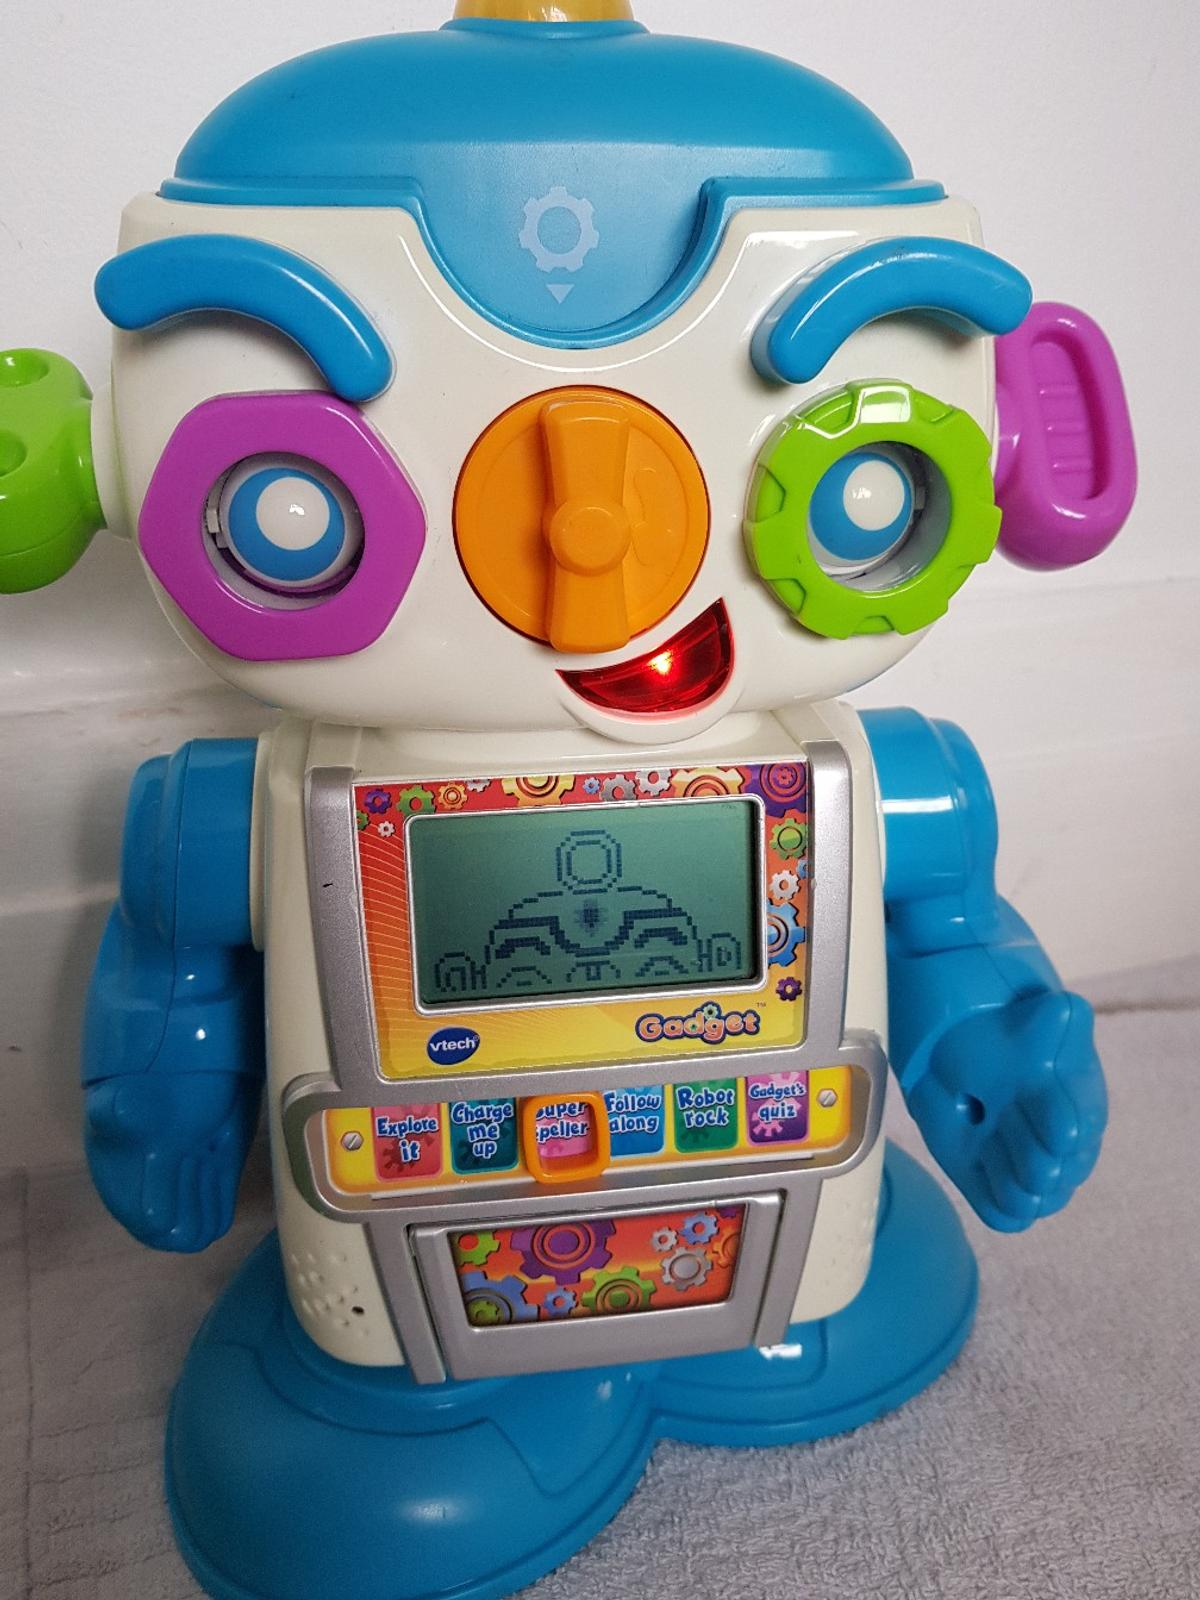 Robot toy in M32 Trafford for £15 00 for sale - Shpock